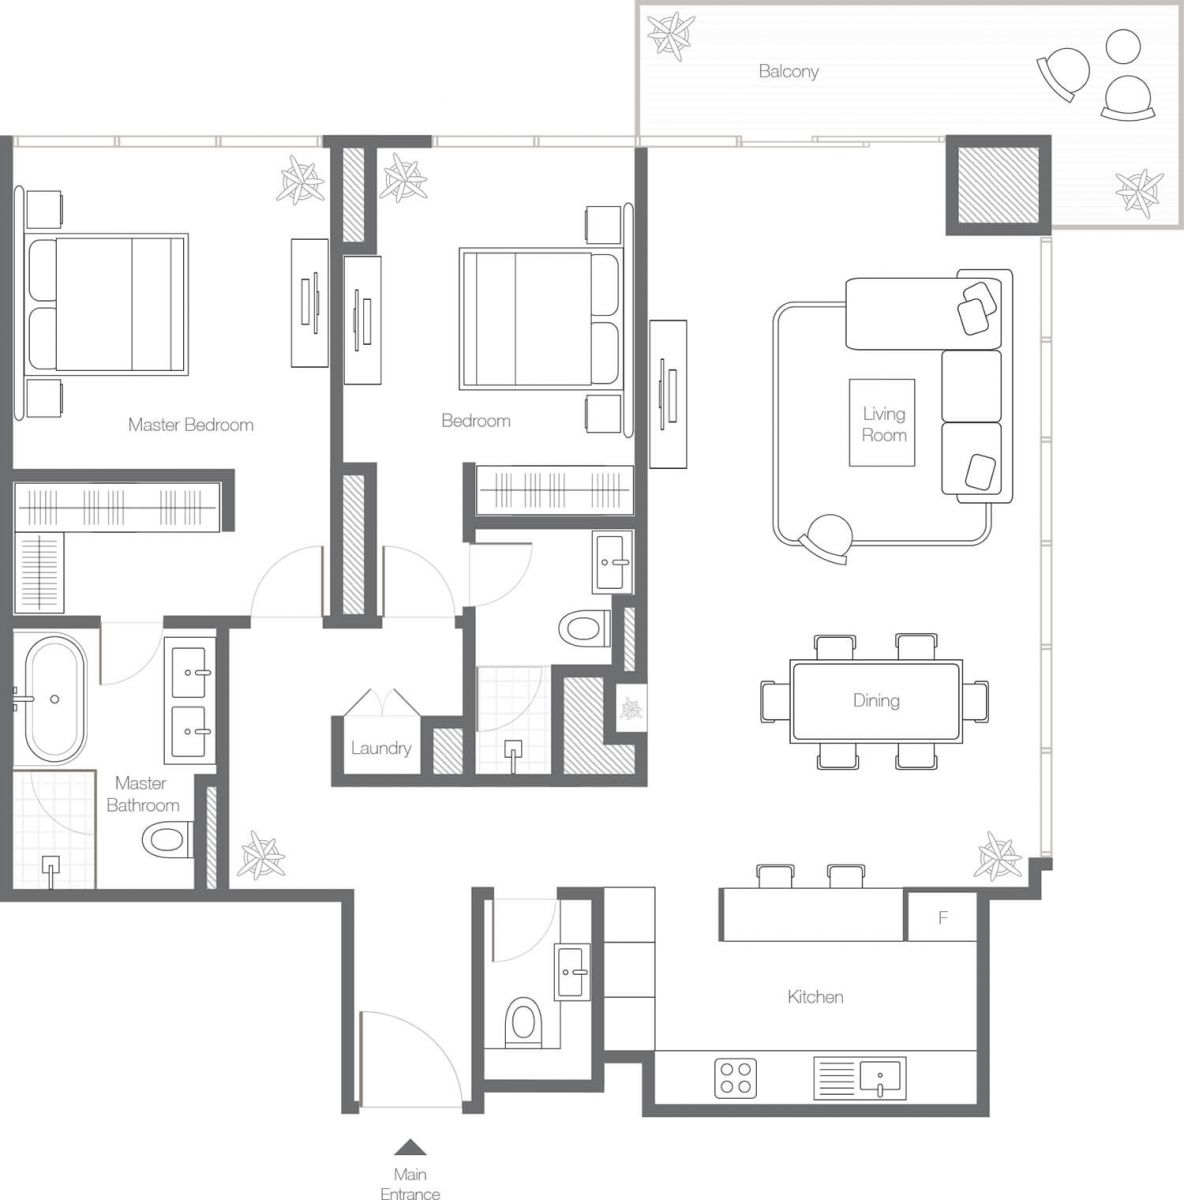 2 Bedroom Apartment - Type 2A.jpg